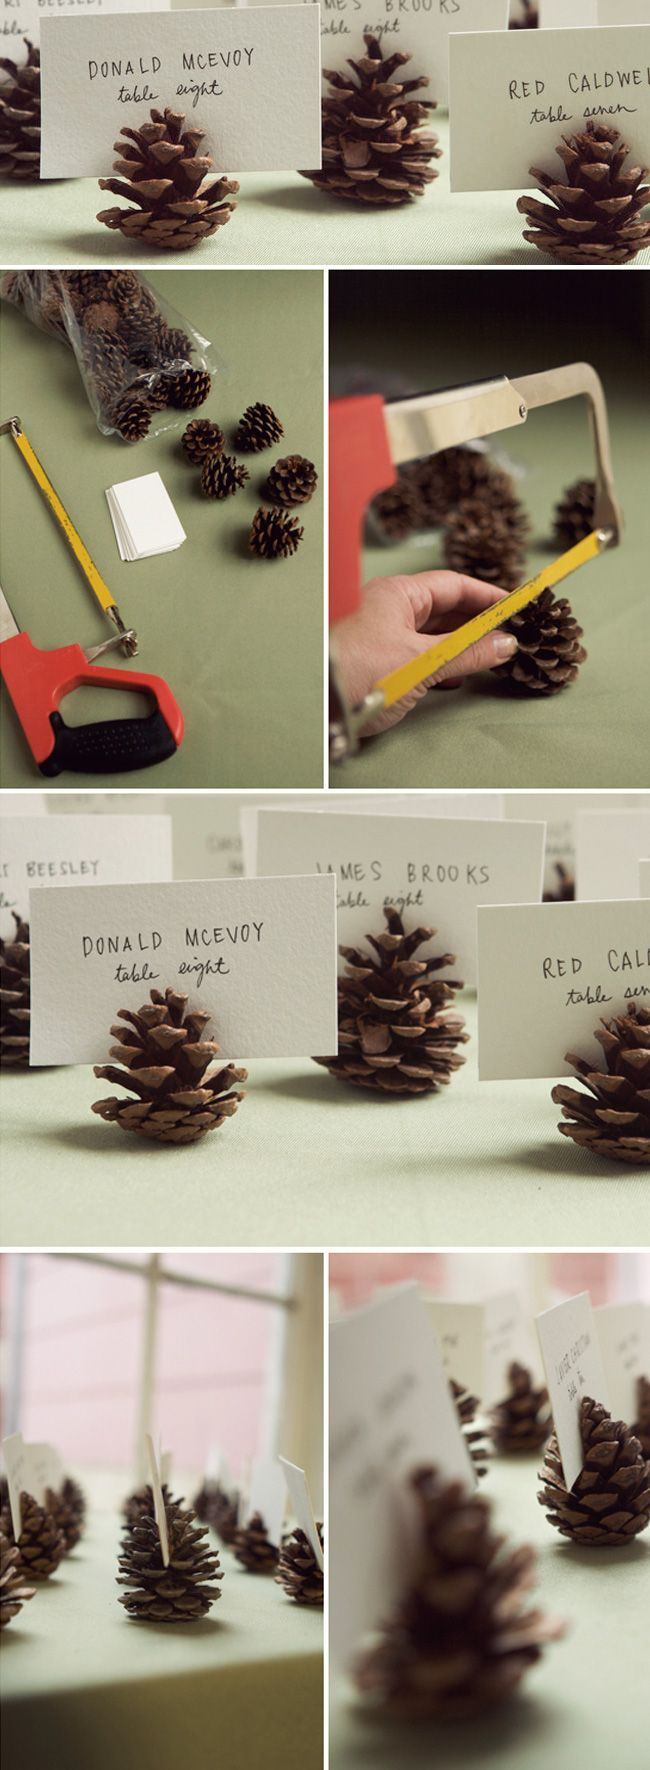 pinecone placecard holders.